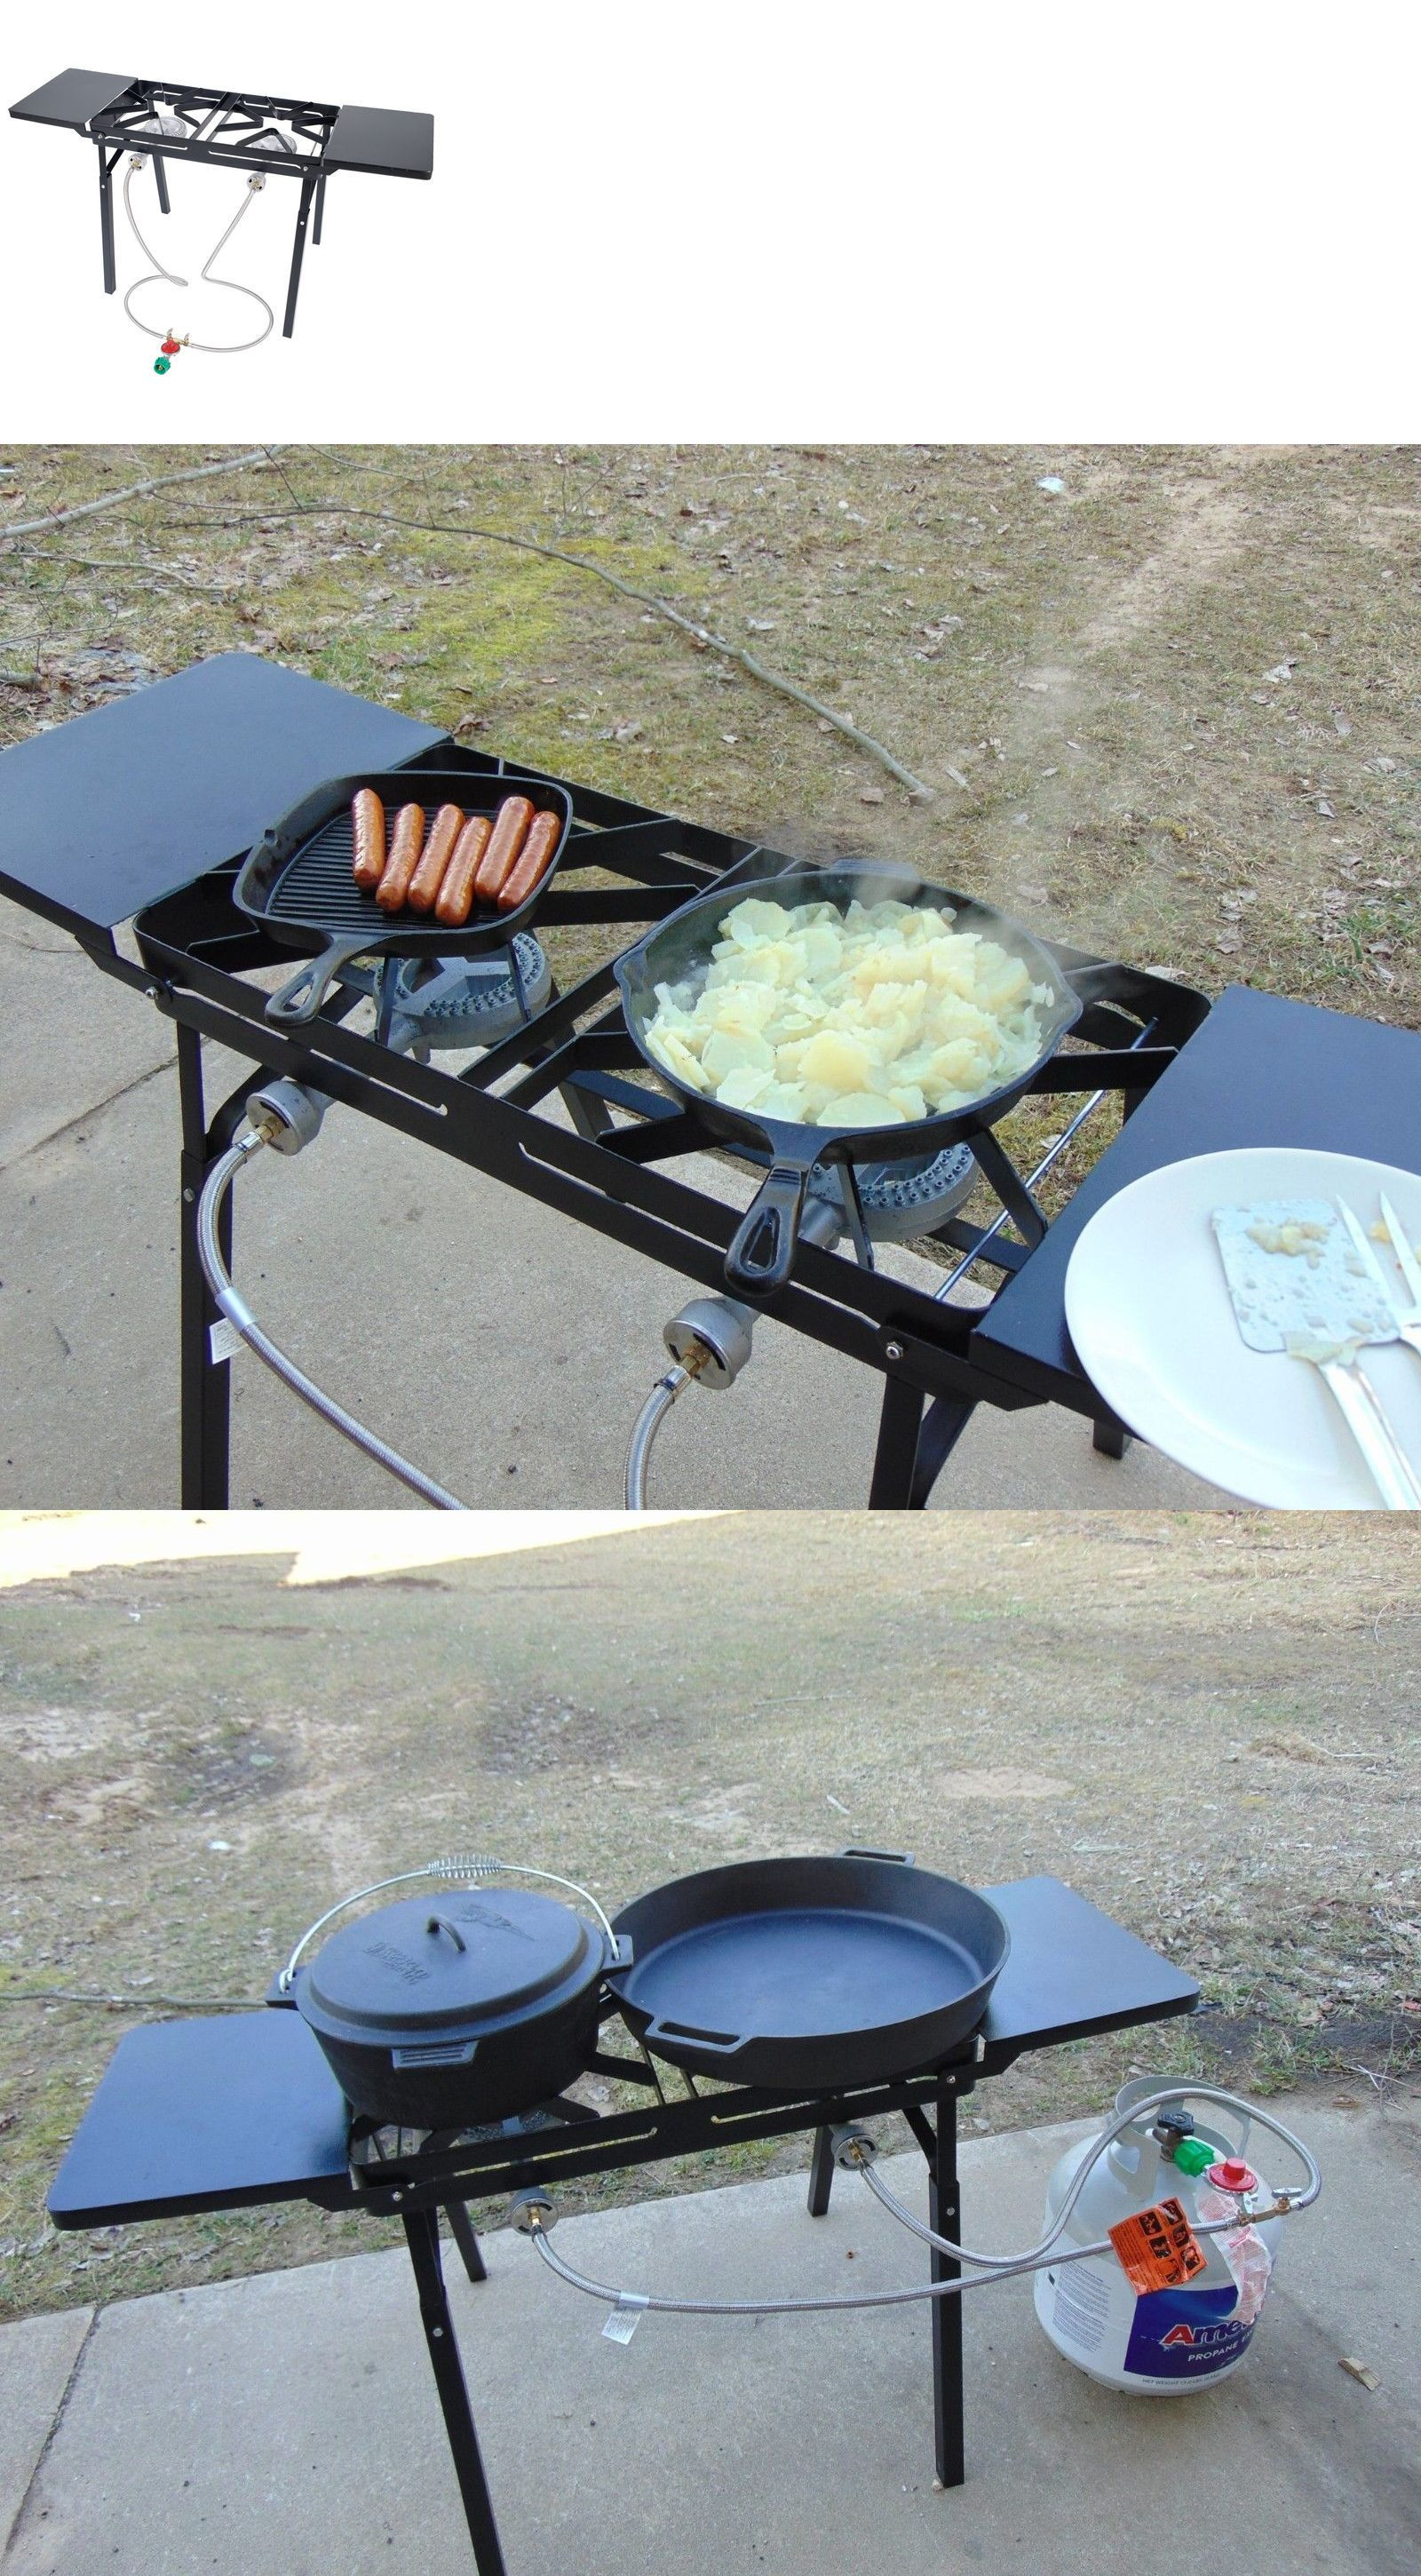 Lovely Camping BBQs And Grills 181388: Dual Burner Outdoor Patio Stove For Cooking  And Canning